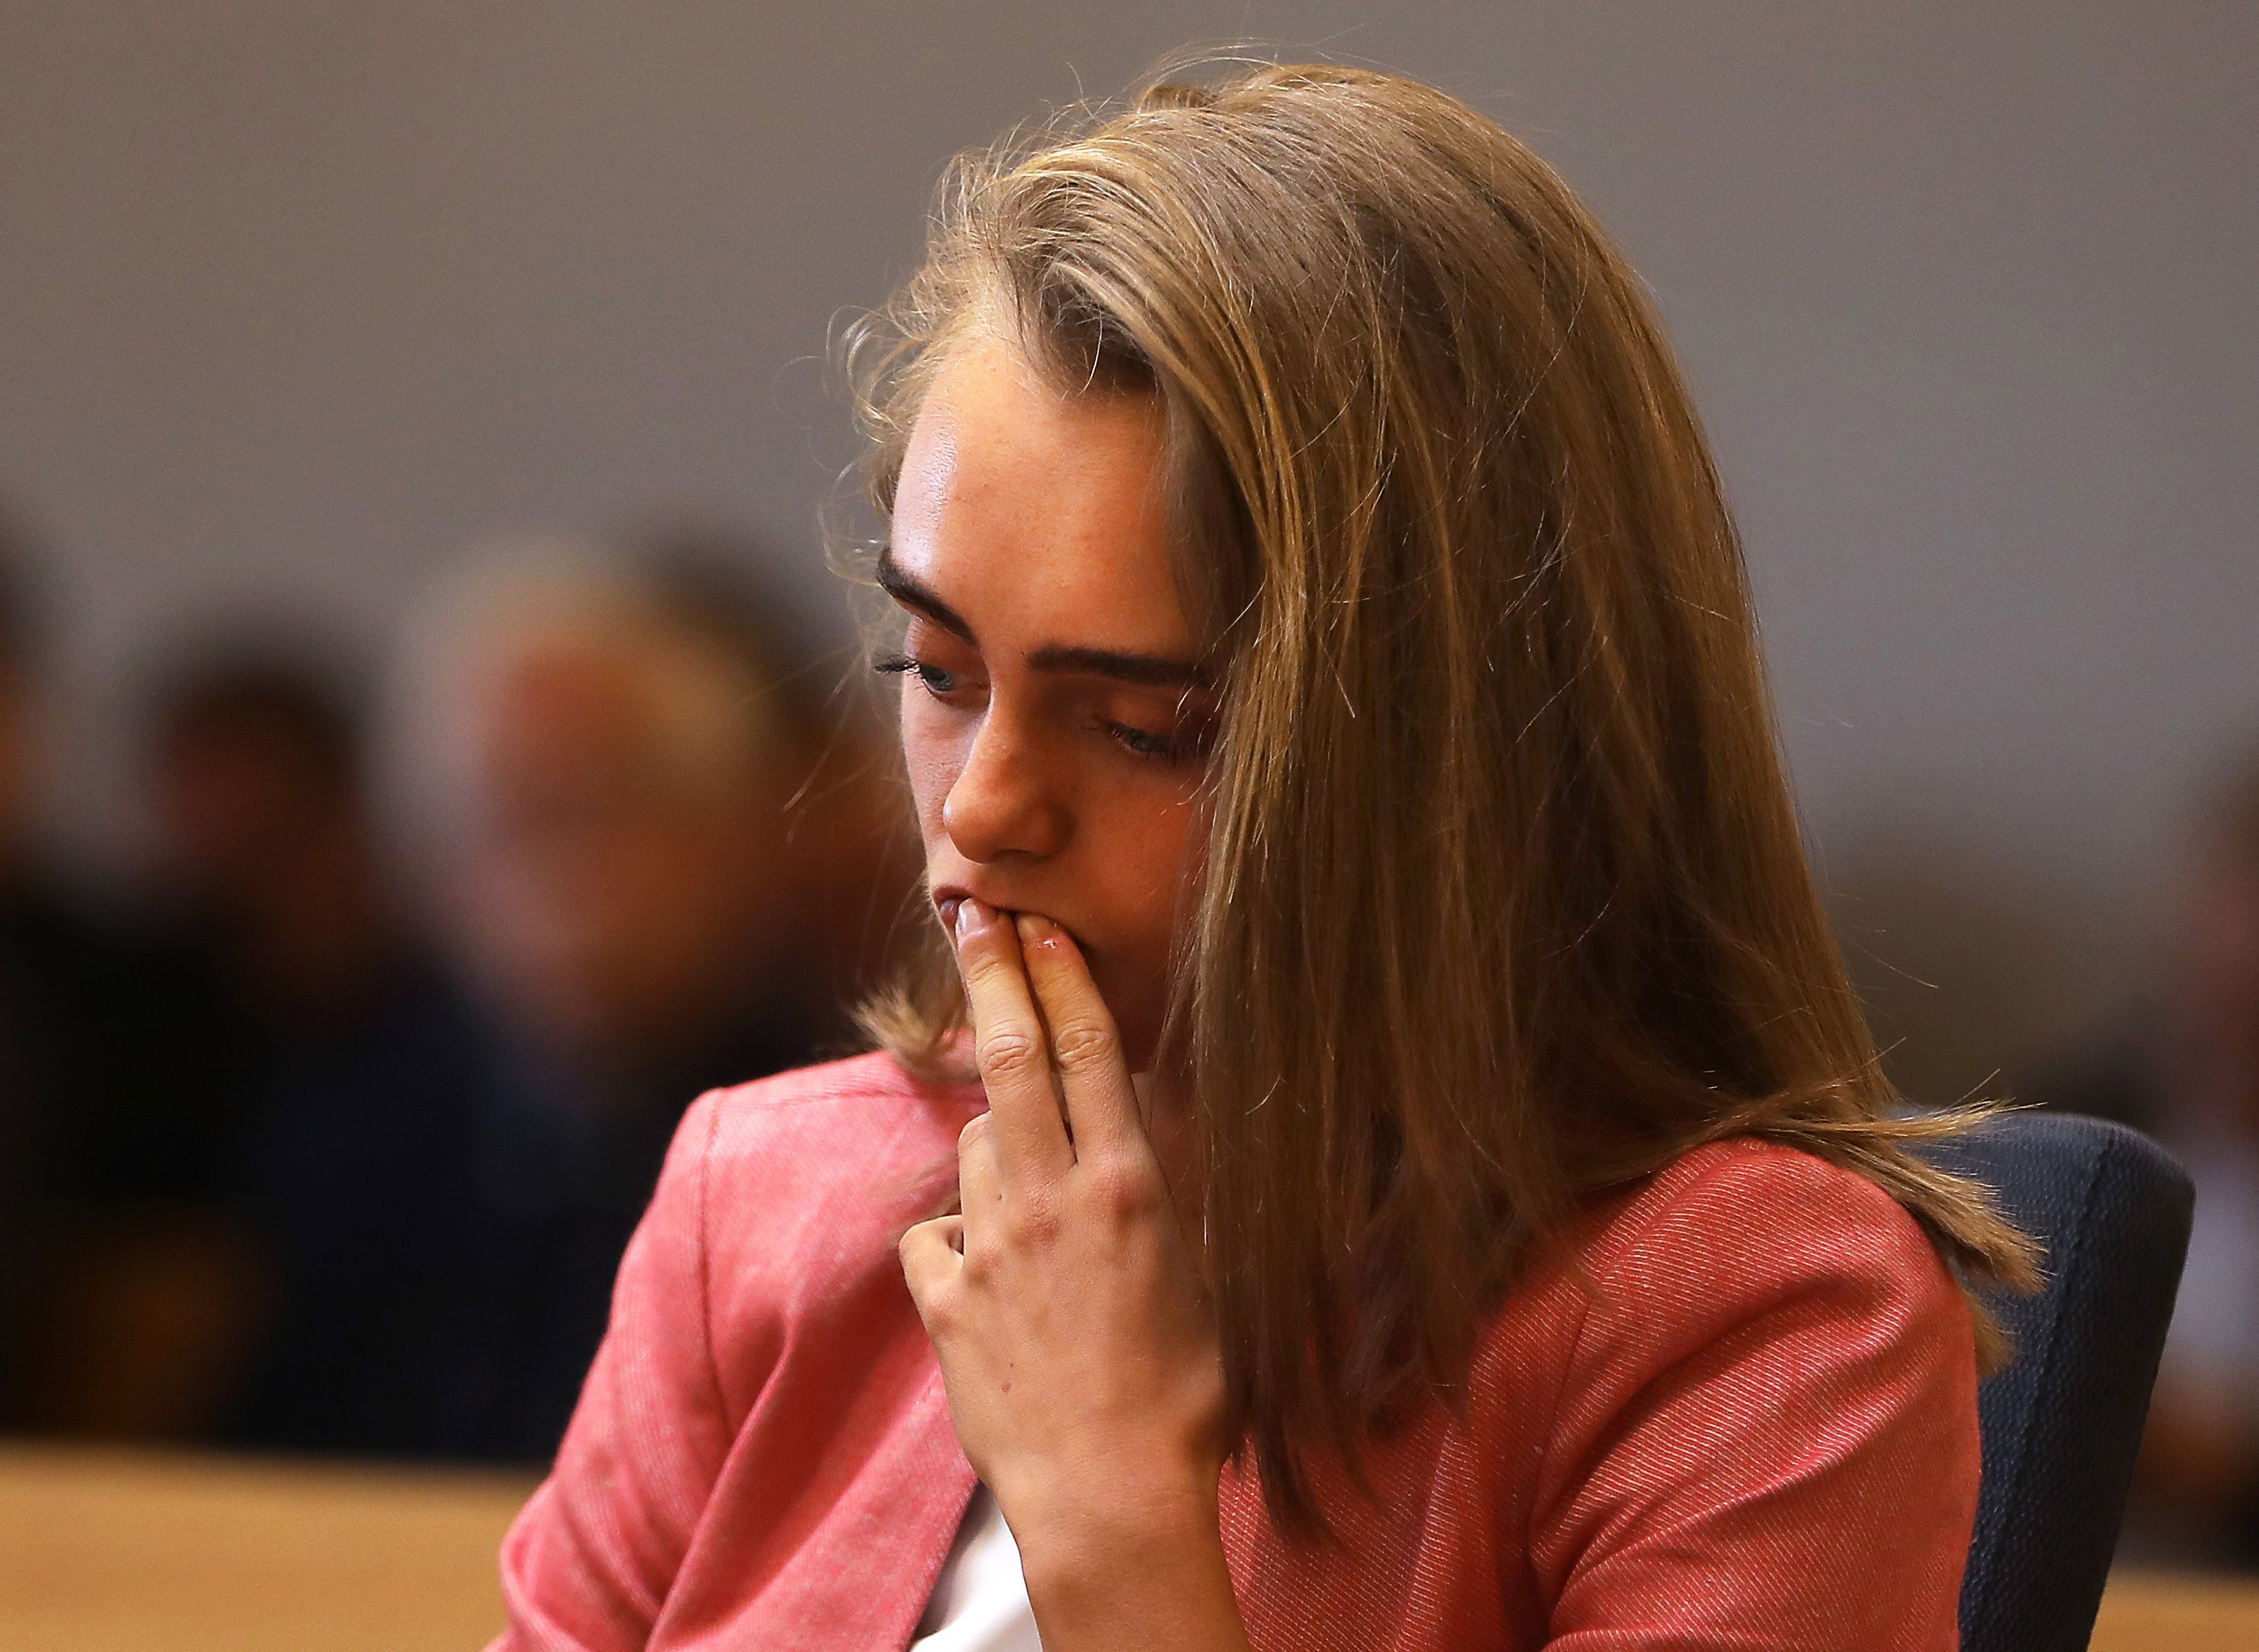 I Love You, Now Die: The texts used as evidence against Michelle Carter